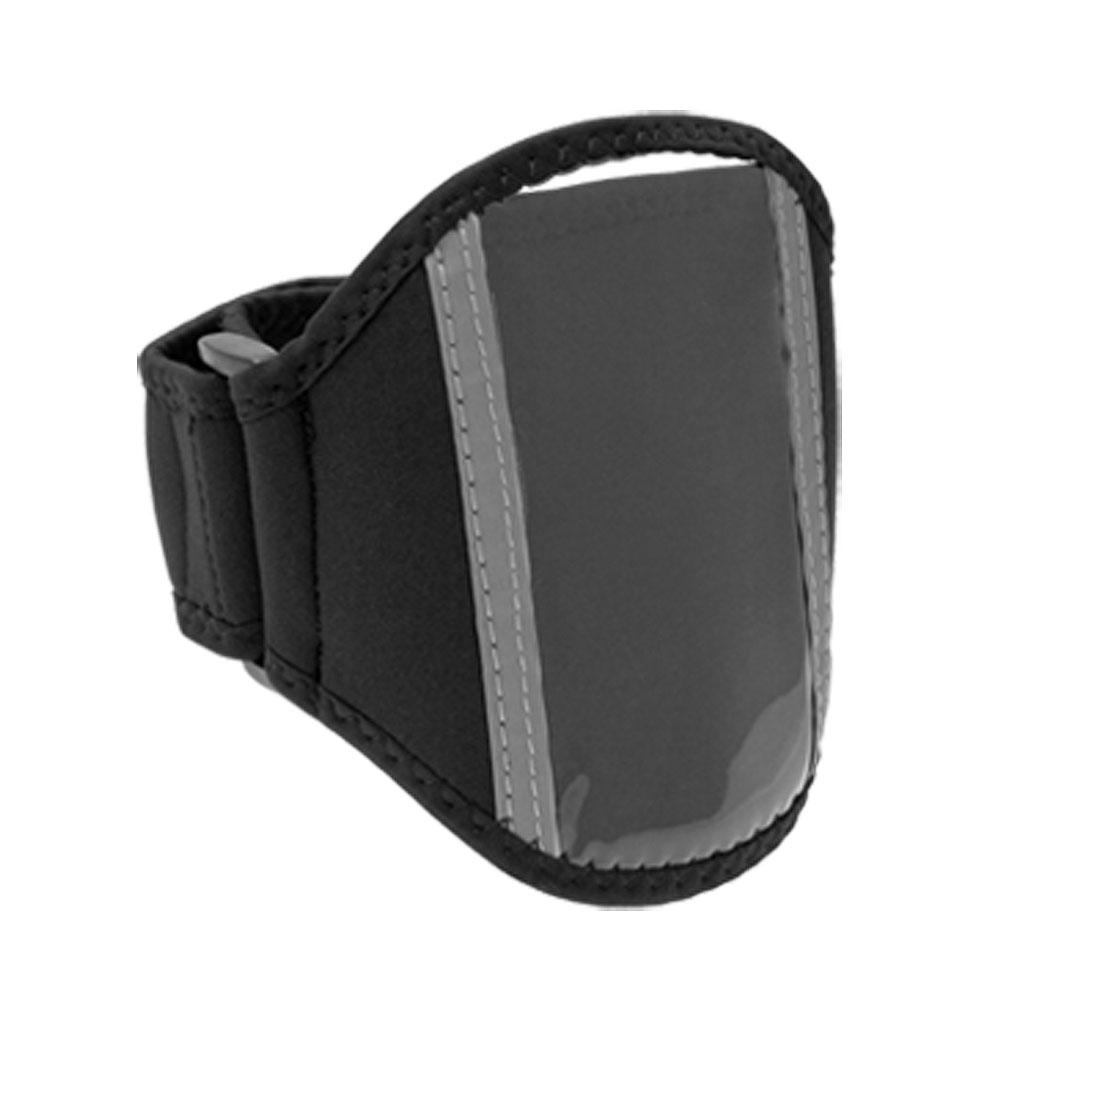 Hook and Loop Fastener Strap Neoprene Cell Phone Case Arm Bag Pouch for iPhone 3G